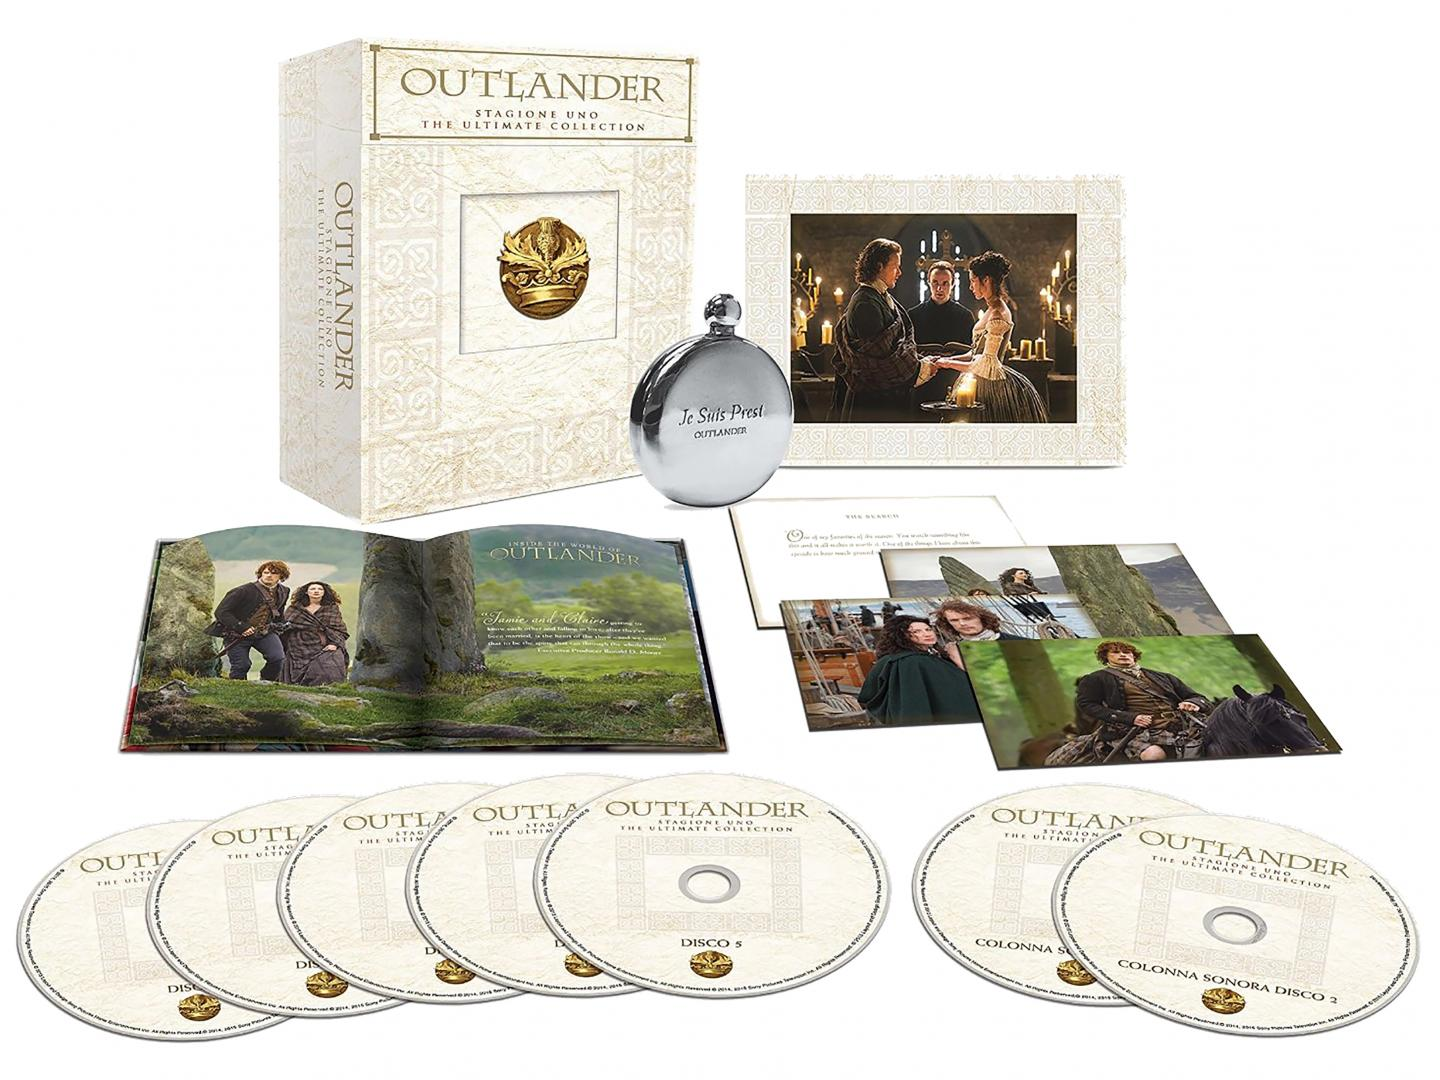 Outlander Season One: The Ultimate Collection Thumbnail